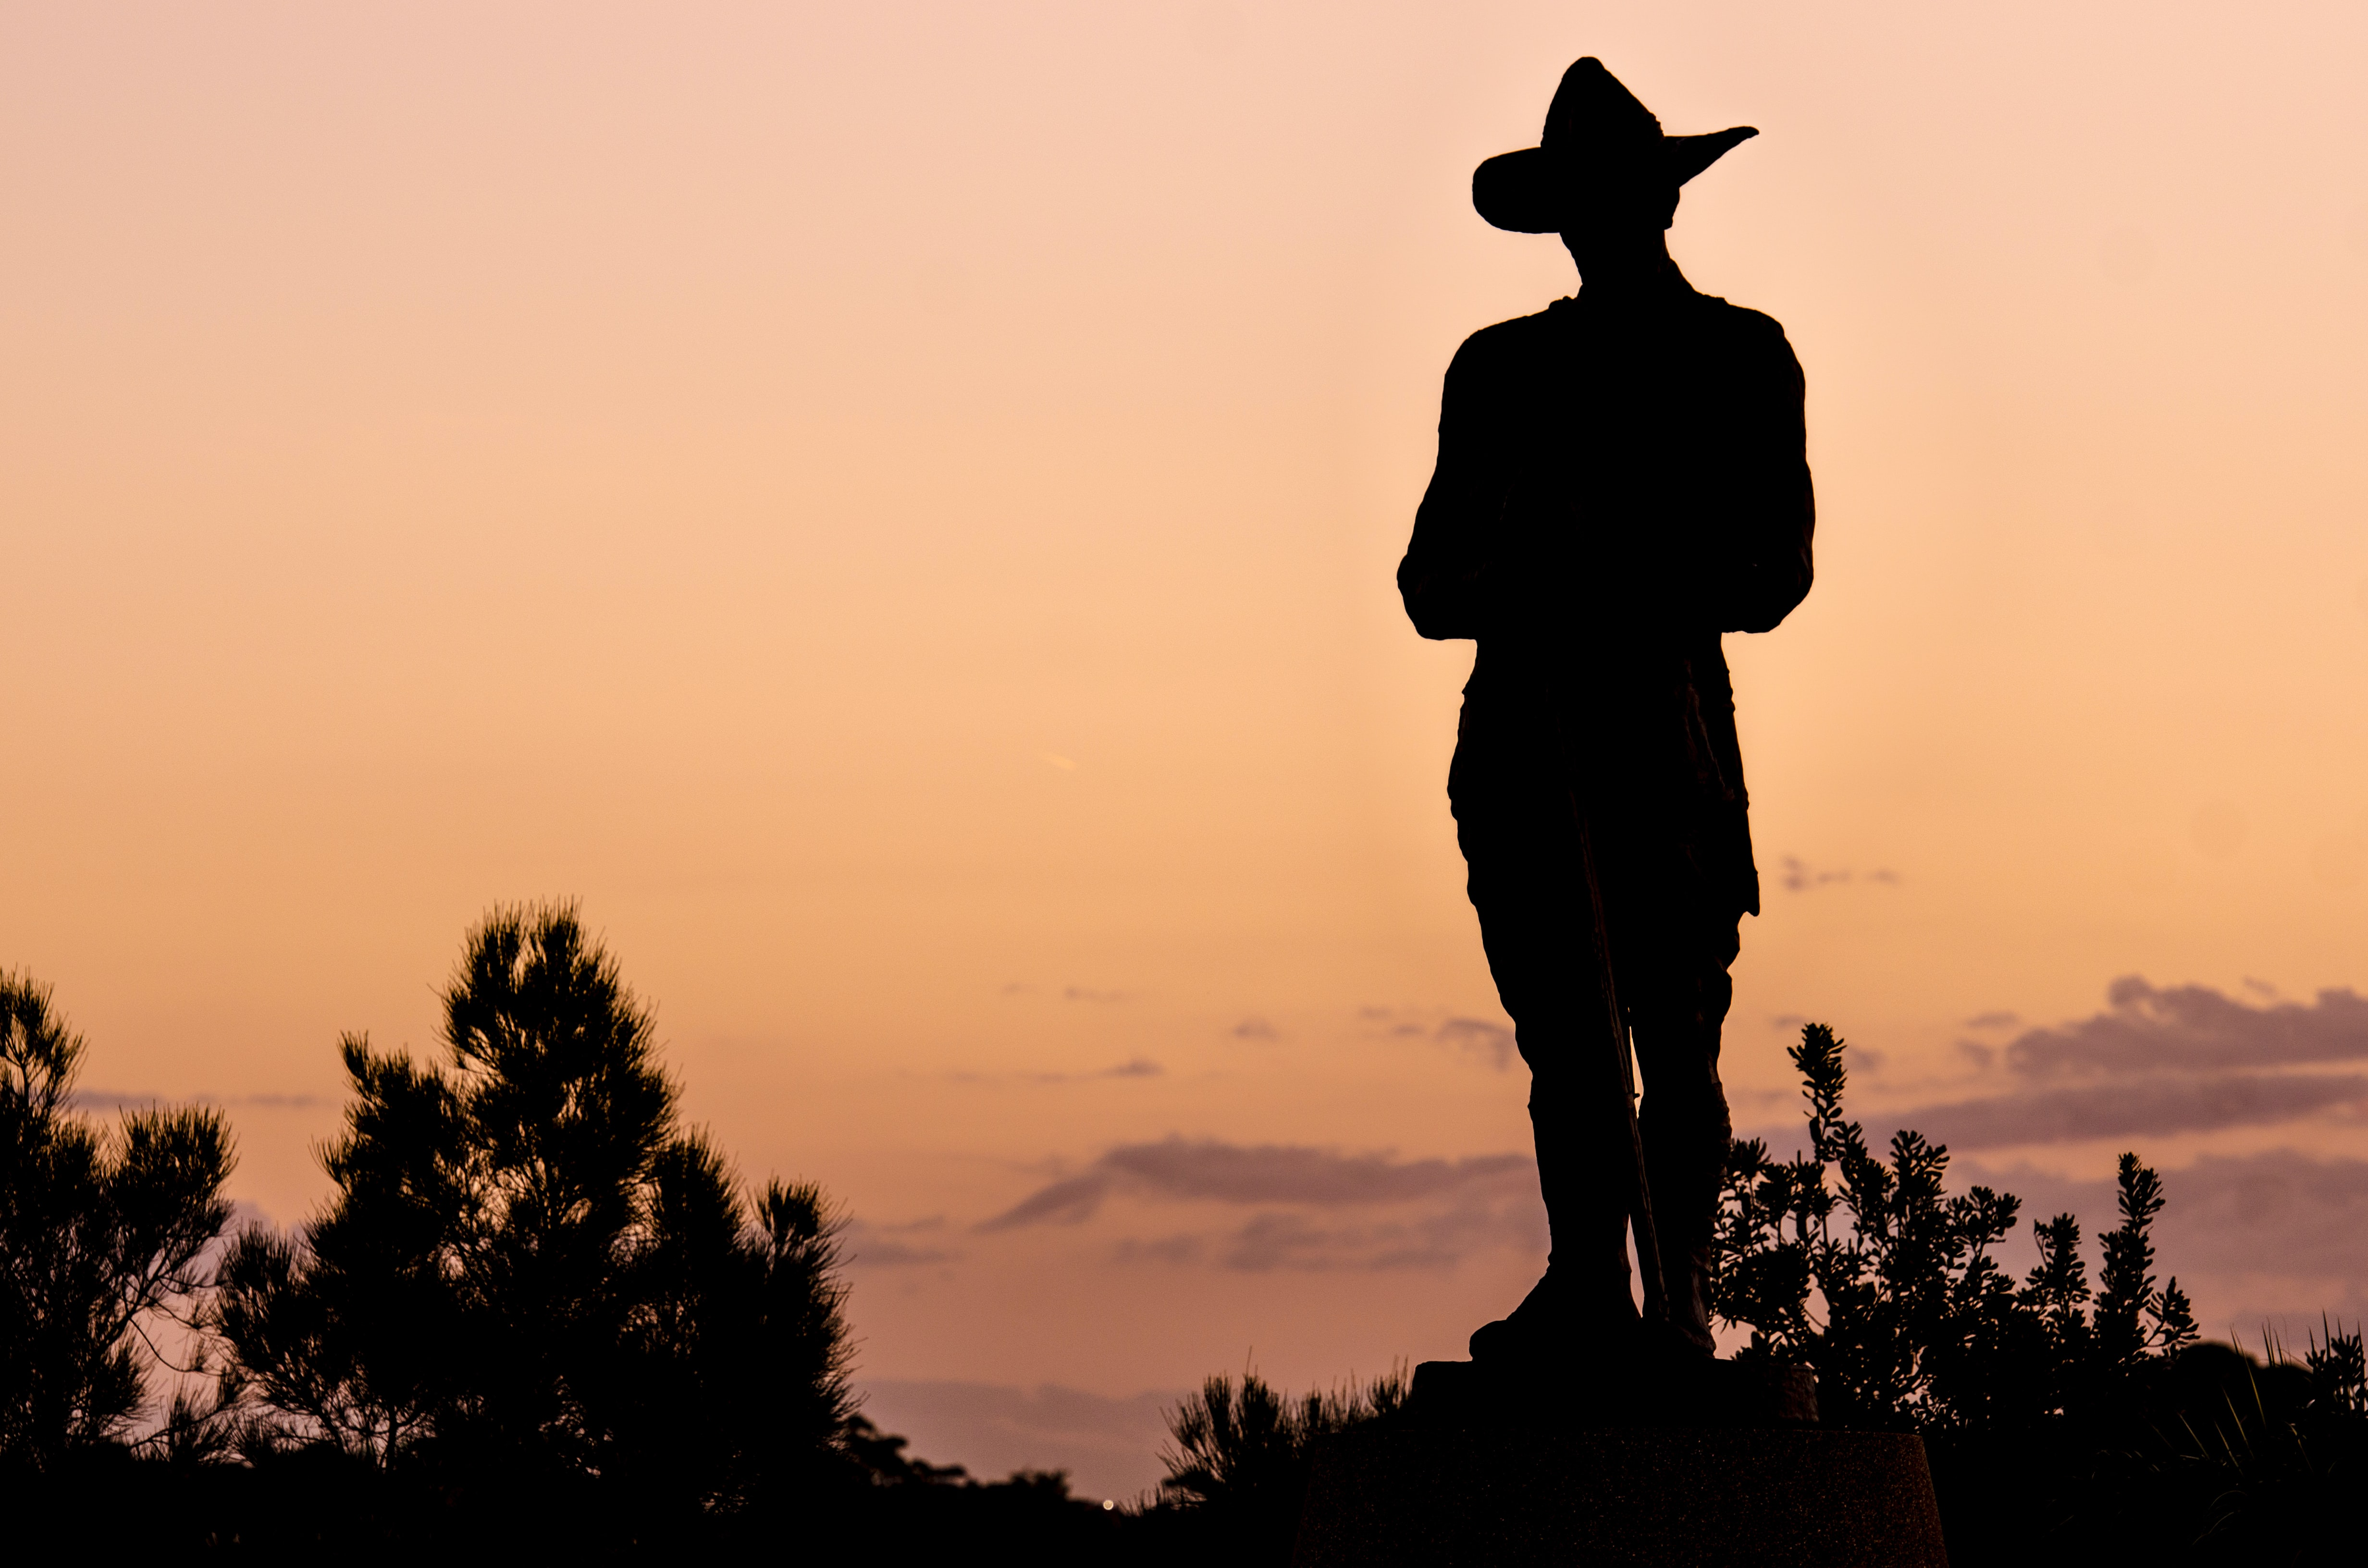 silhouette of person wearing hat